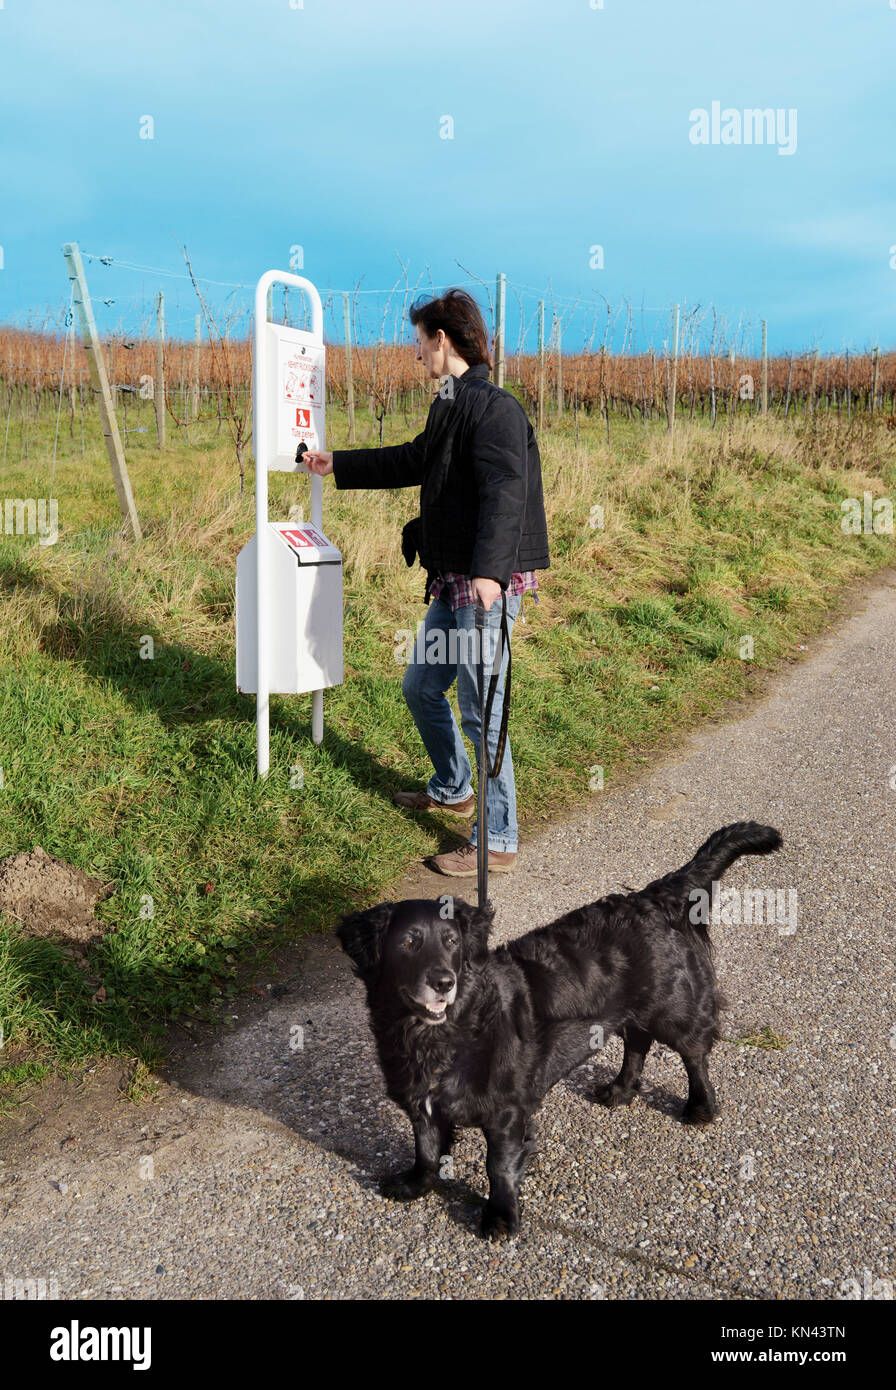 Woman pulls pouch for dog waste in the vineyard. - Stock Image